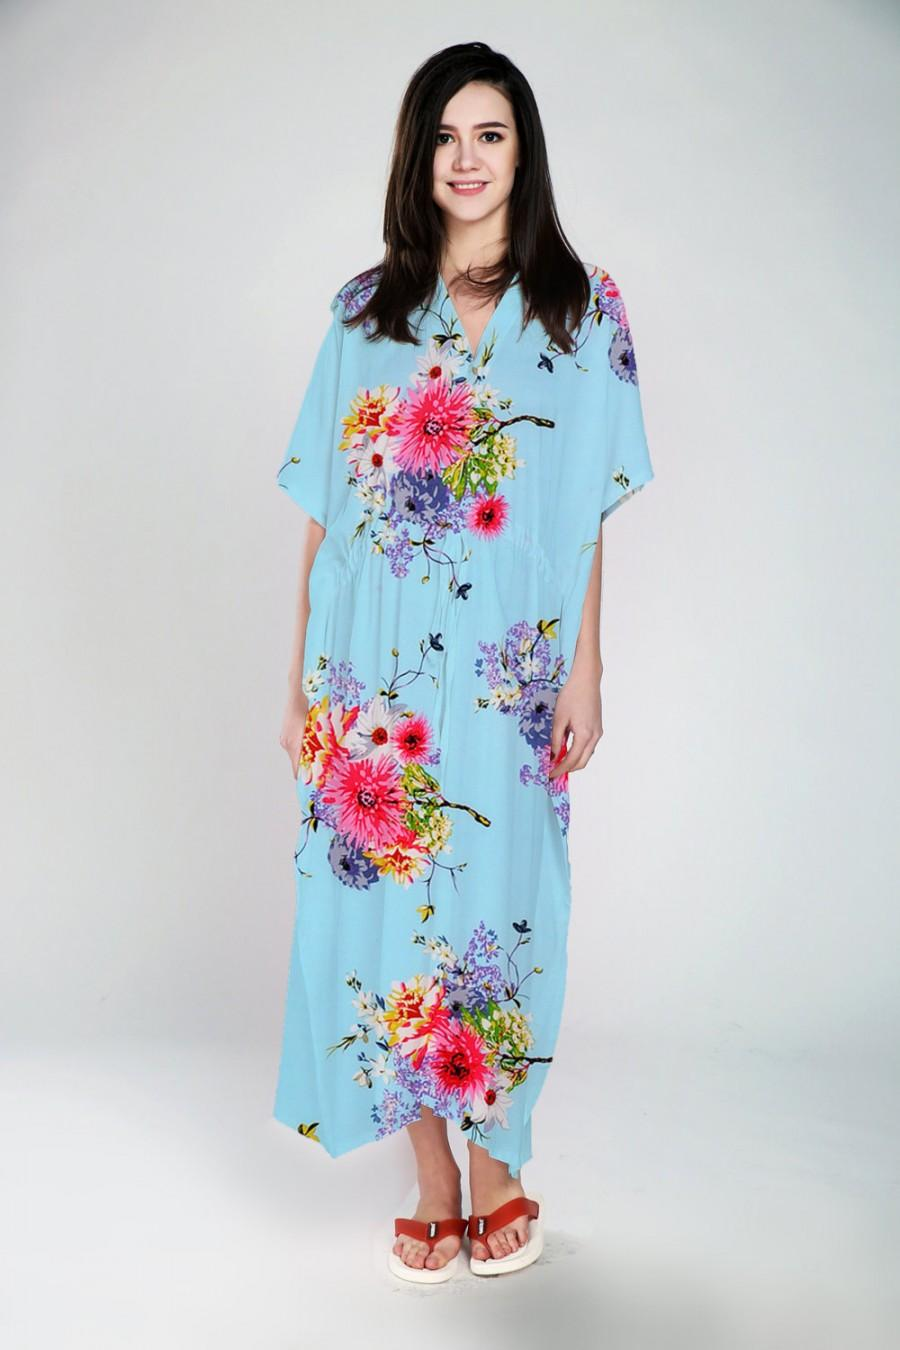 Designer Maternity Hospital Gowns Nursing Hospital Summer Maternity ...